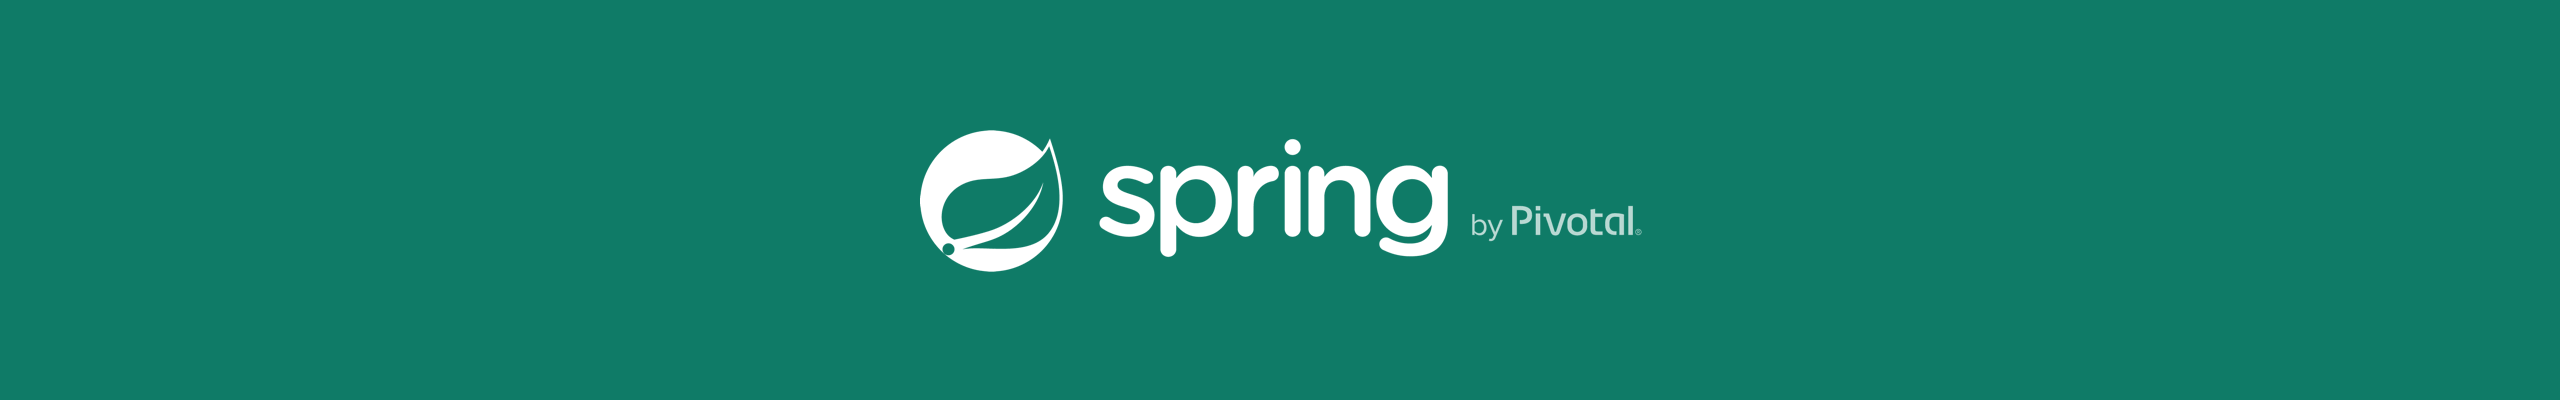 Real-time event streaming using Spring Webflux